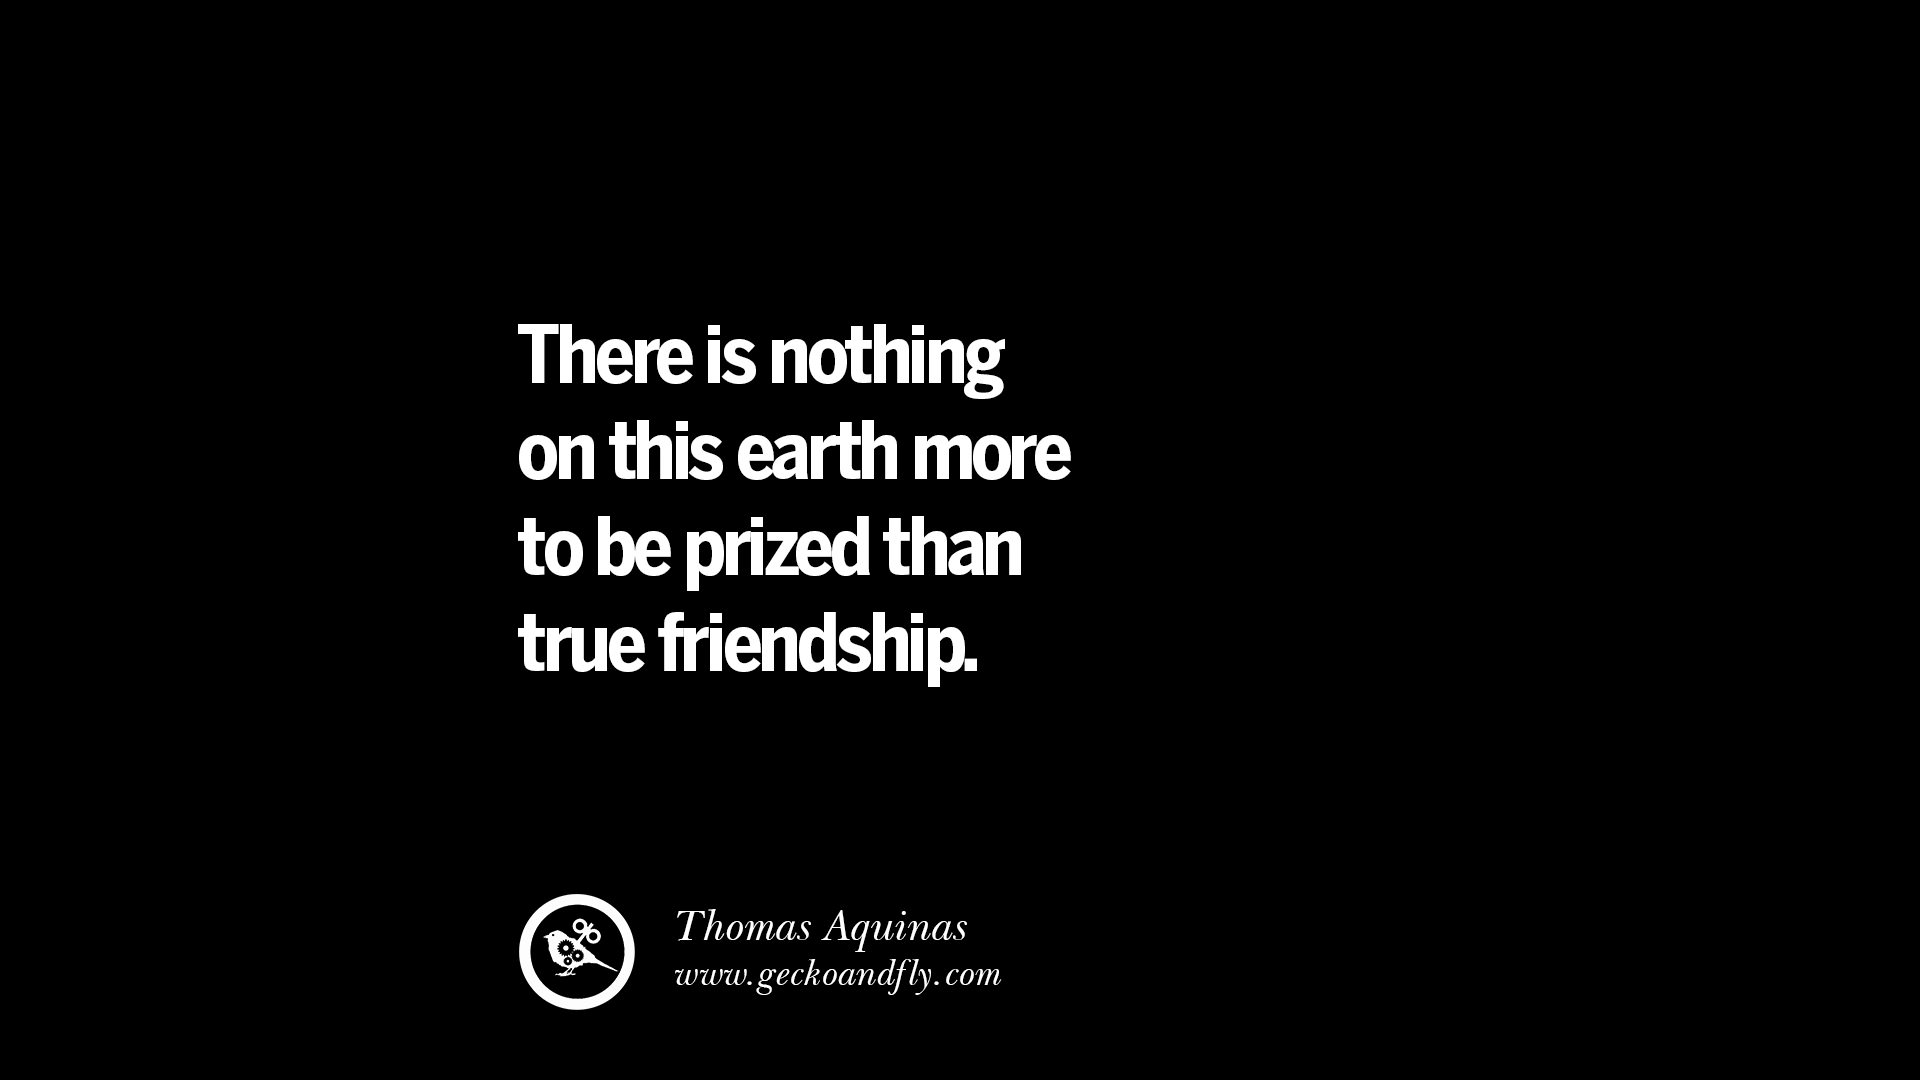 Quotes About Love And Friendship : 20 Amazing Quotes About Friendship Love and Friends